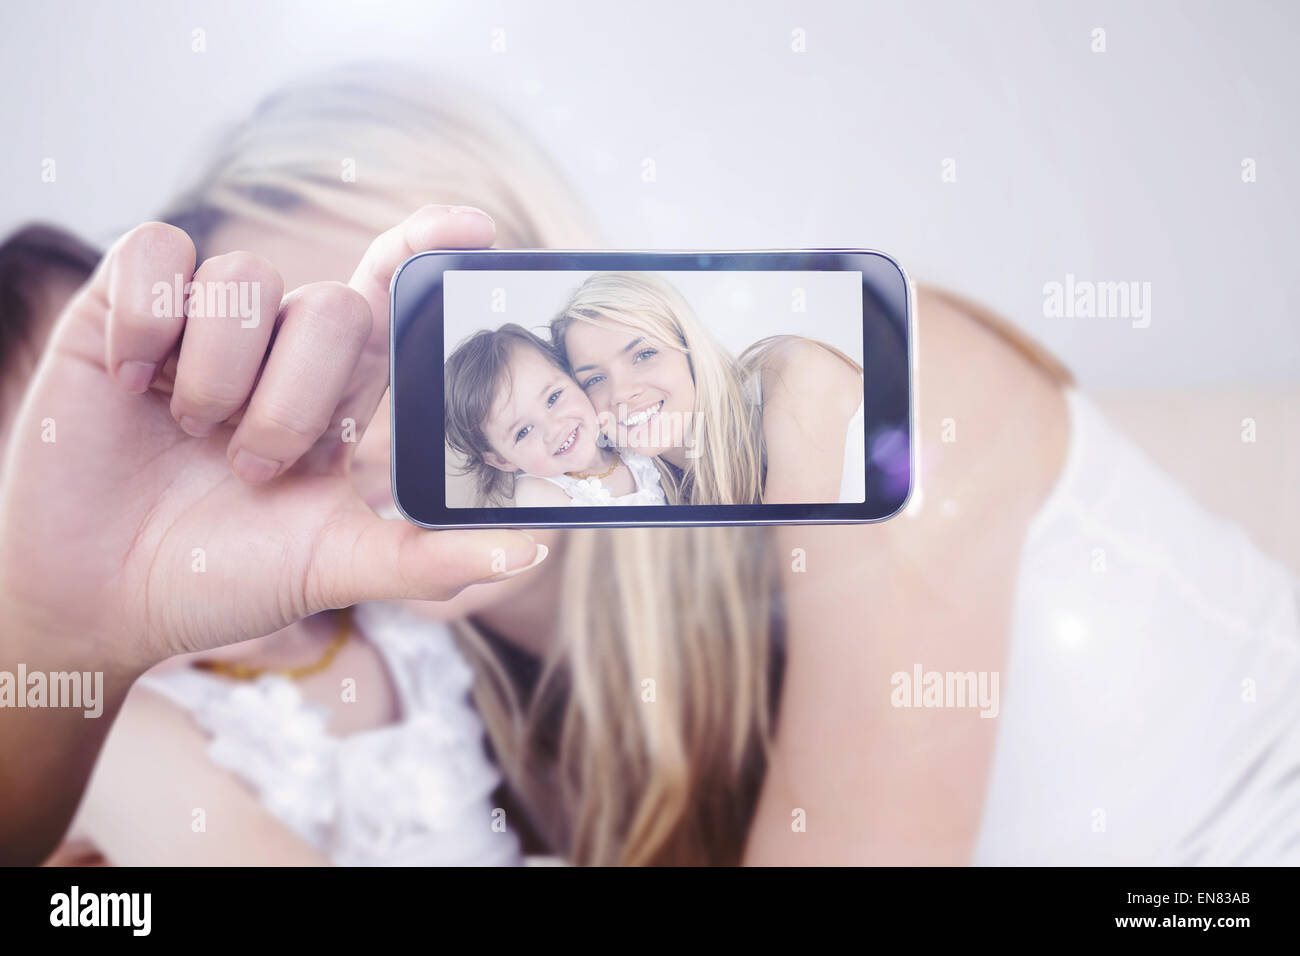 Composite image of hand holding smartphone showing - Stock Image